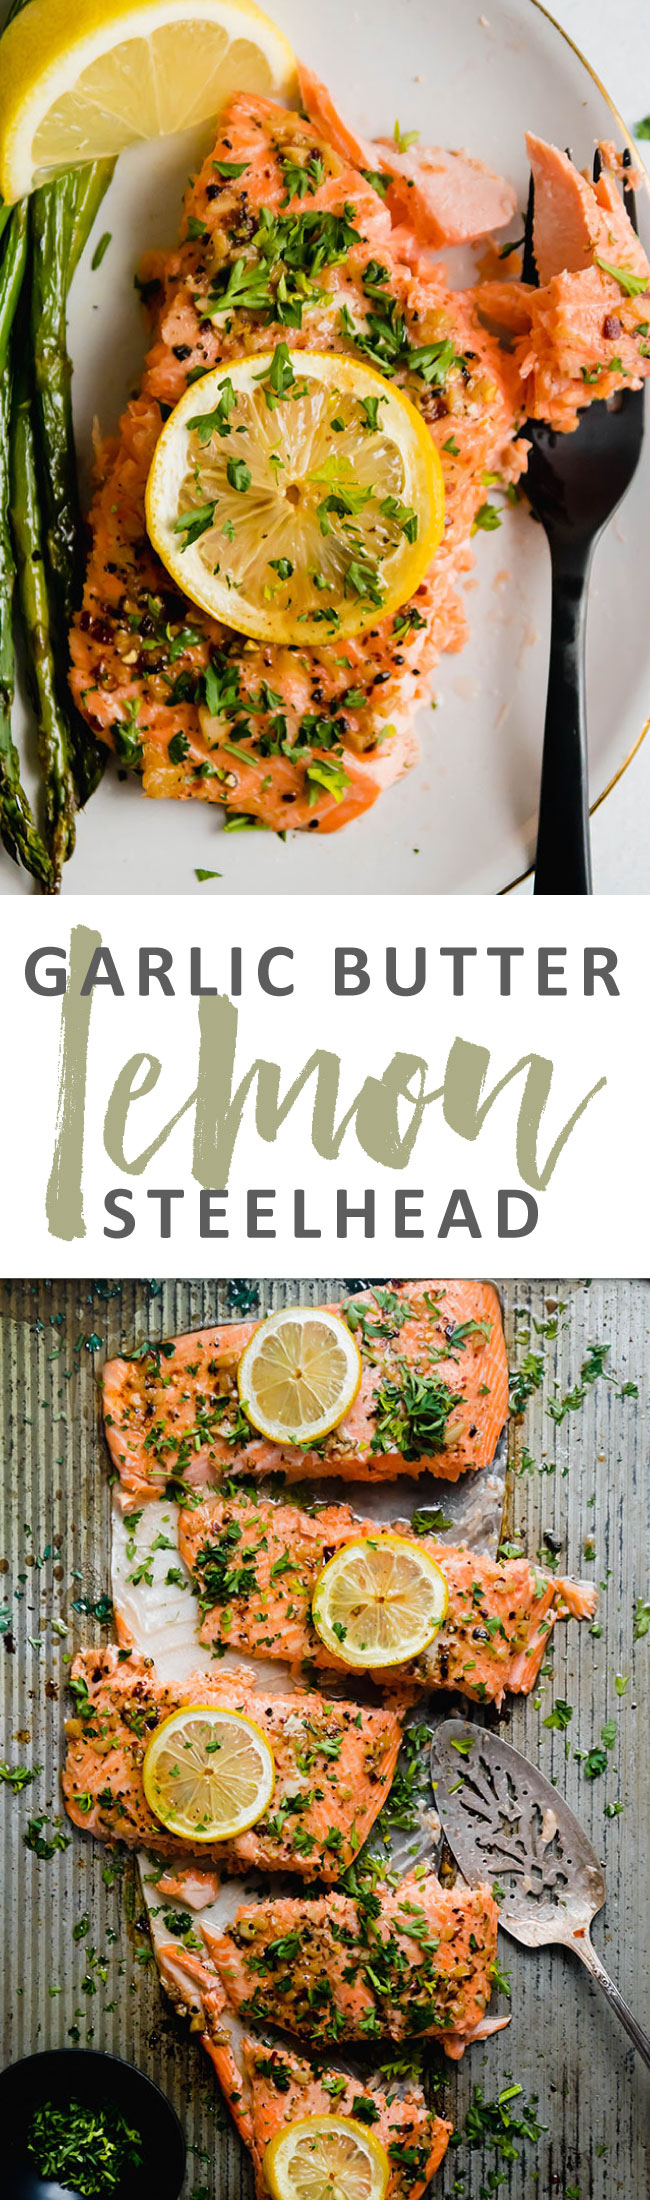 Graphic with two photos of baked steelhead and text overlay